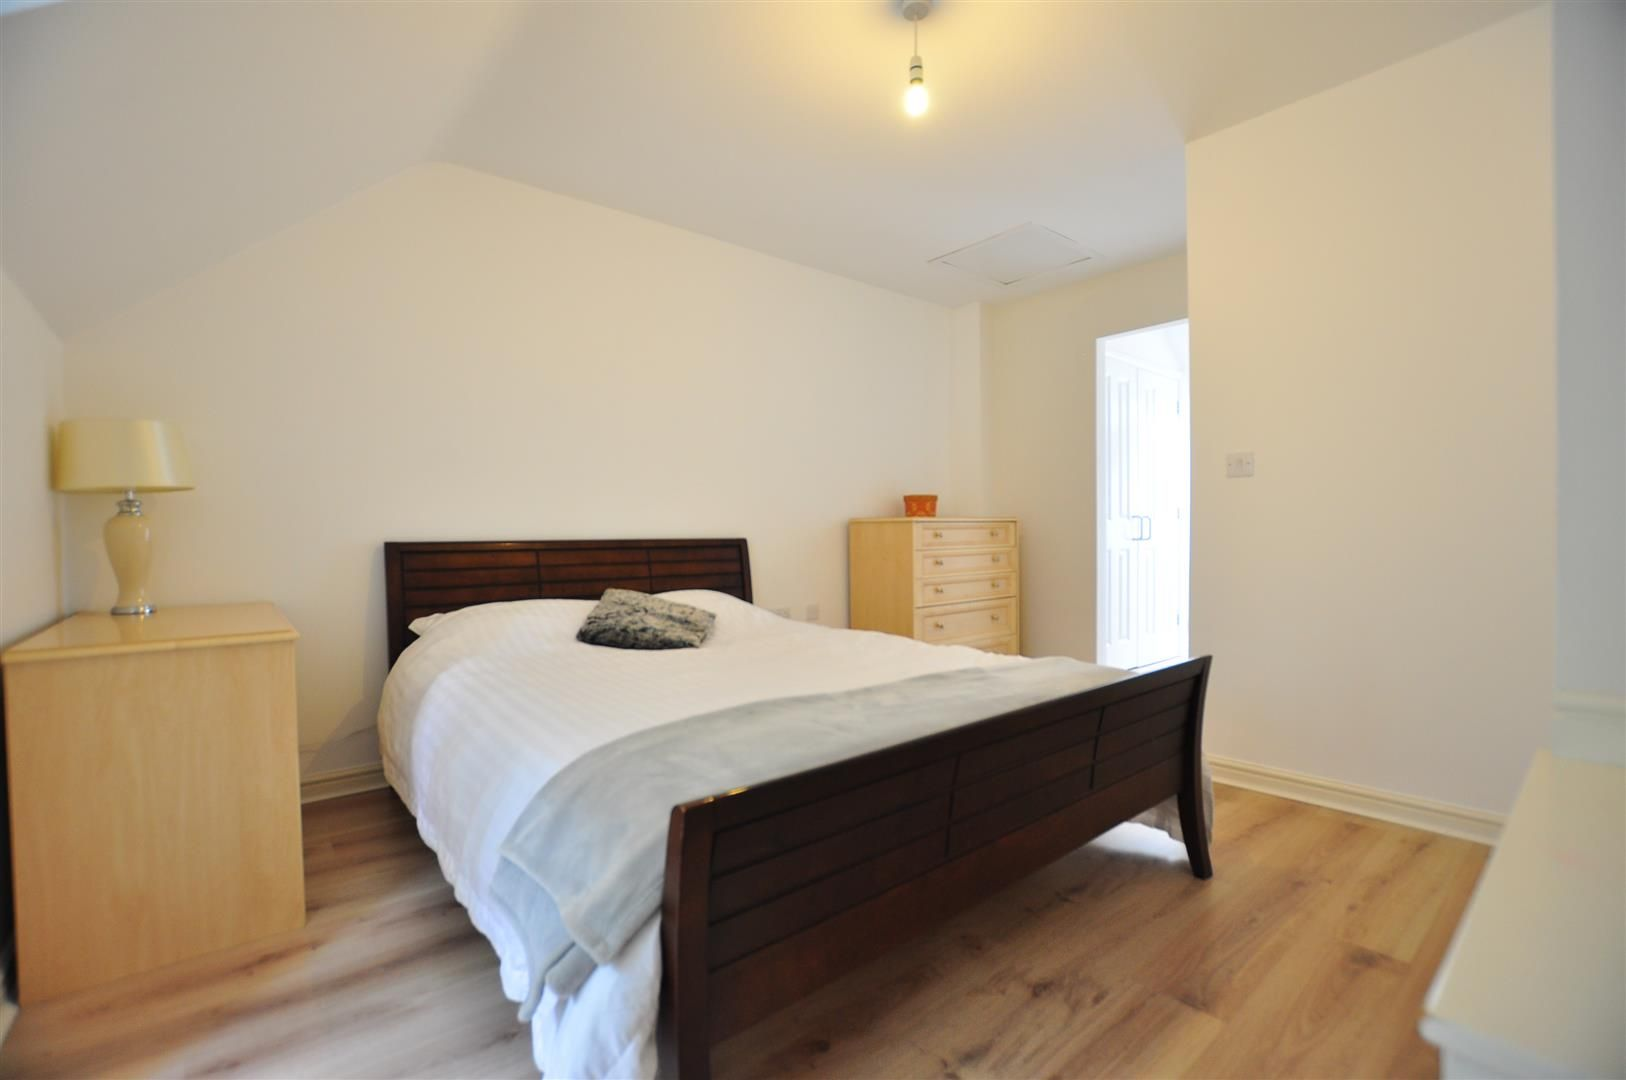 4 bed end-of-terrace for sale  - Property Image 6